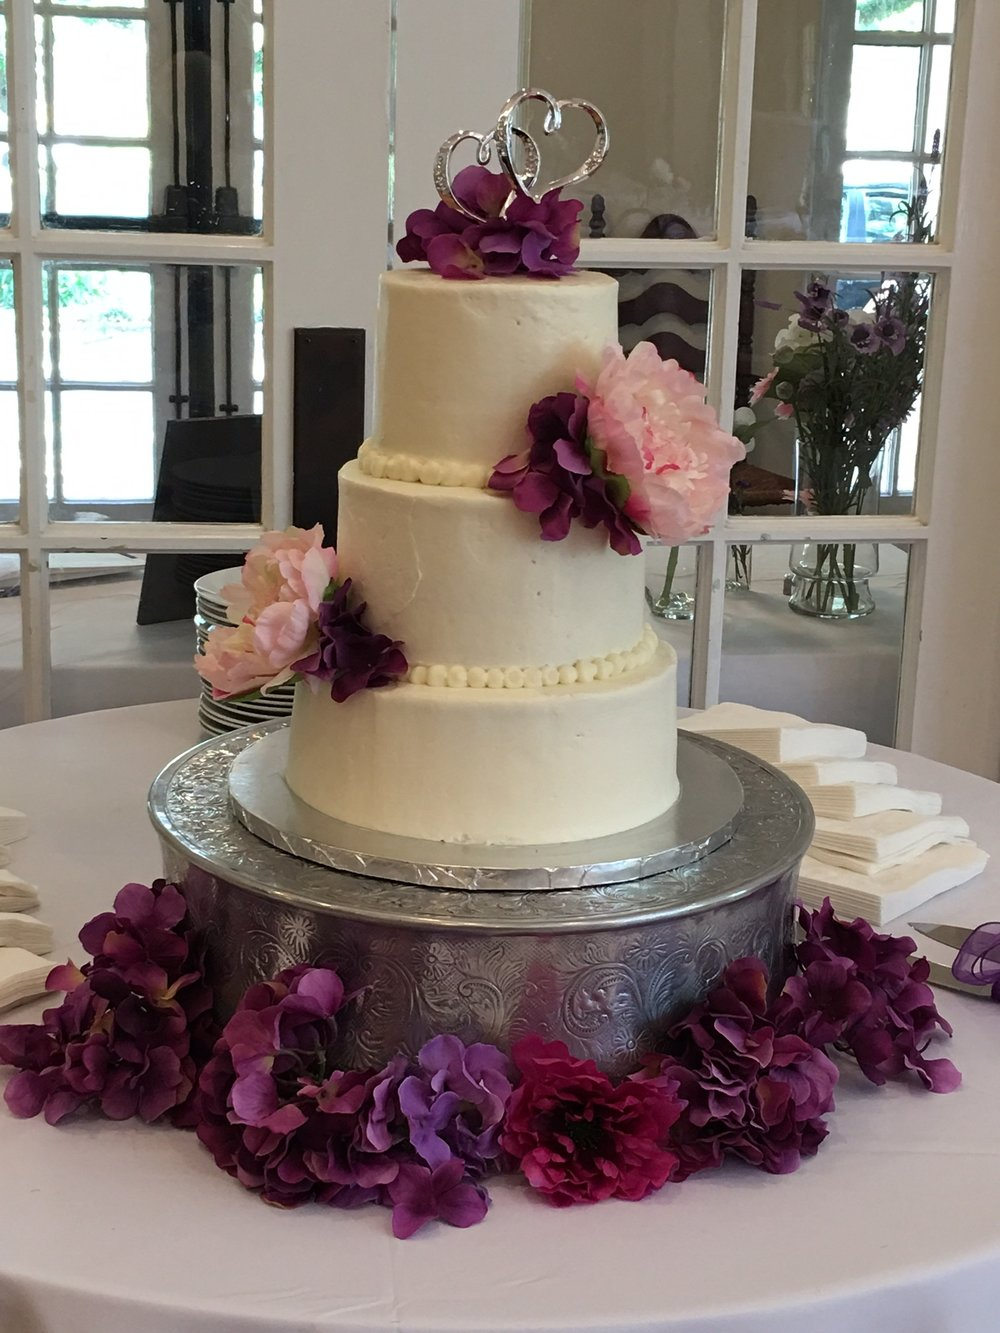 LUXE Catering Tallahassee Florida Wedding Cake